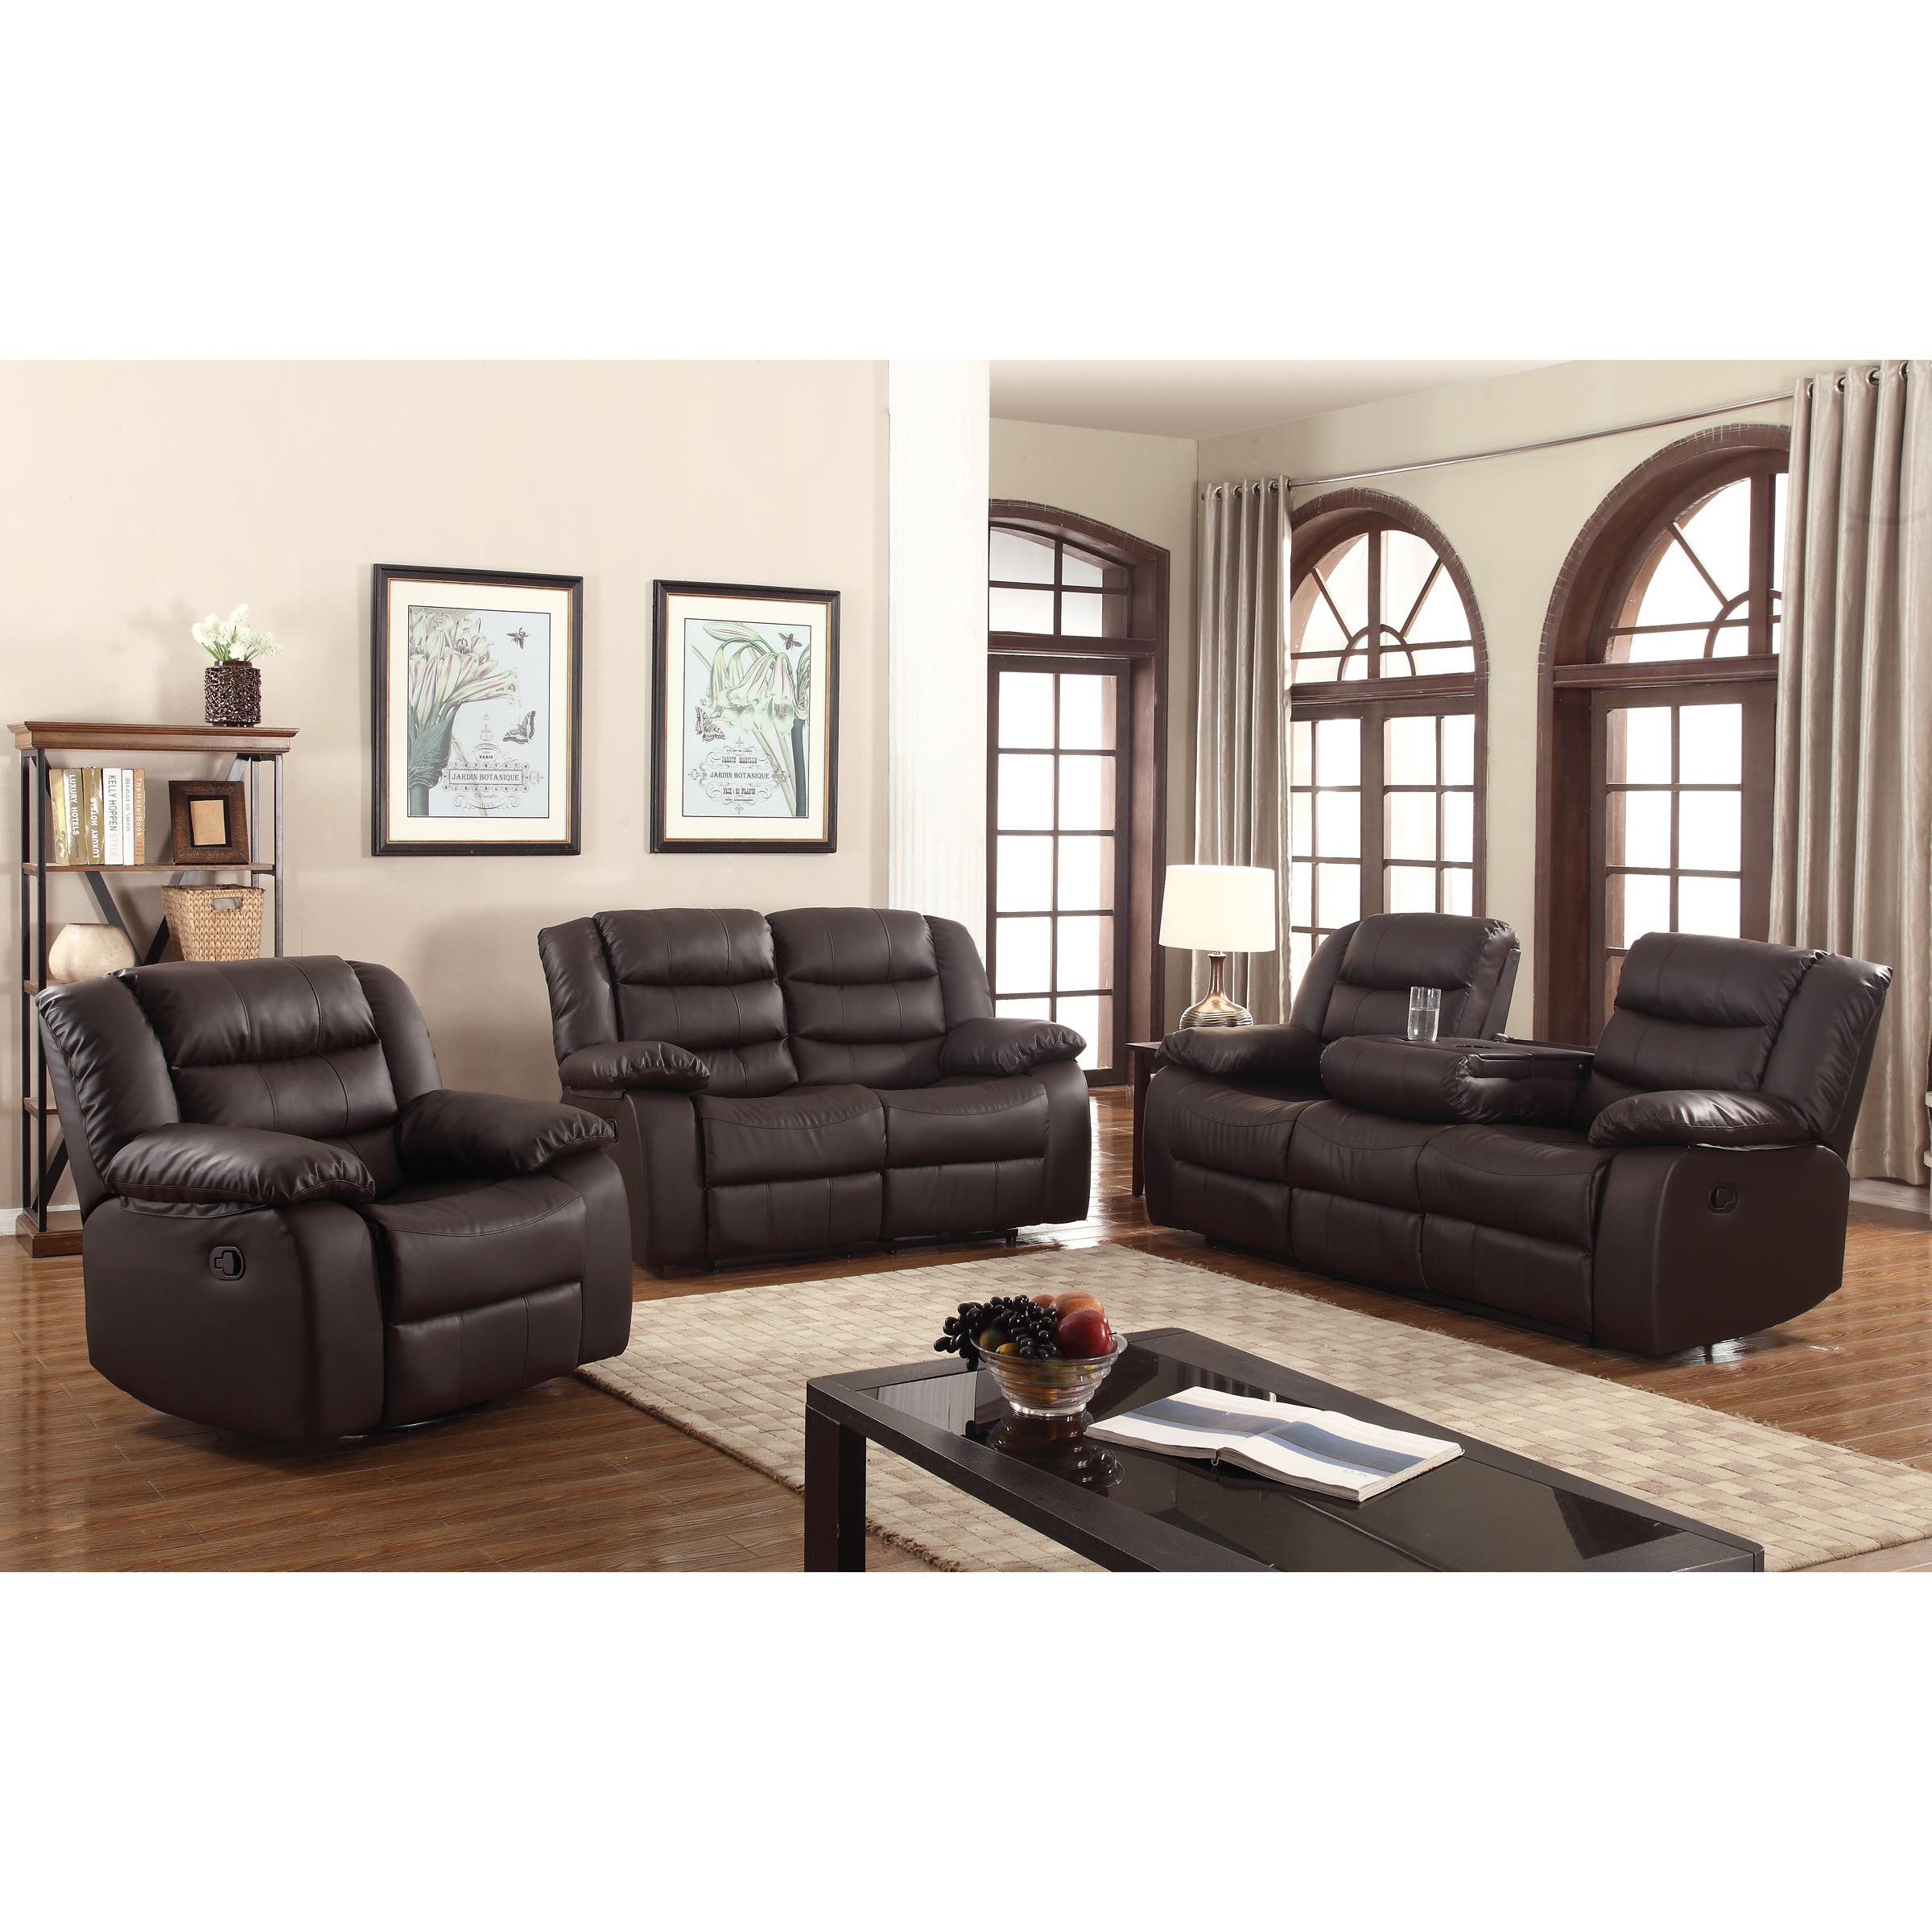 Buy Living Room Furniture Sets Online At Overstock Our